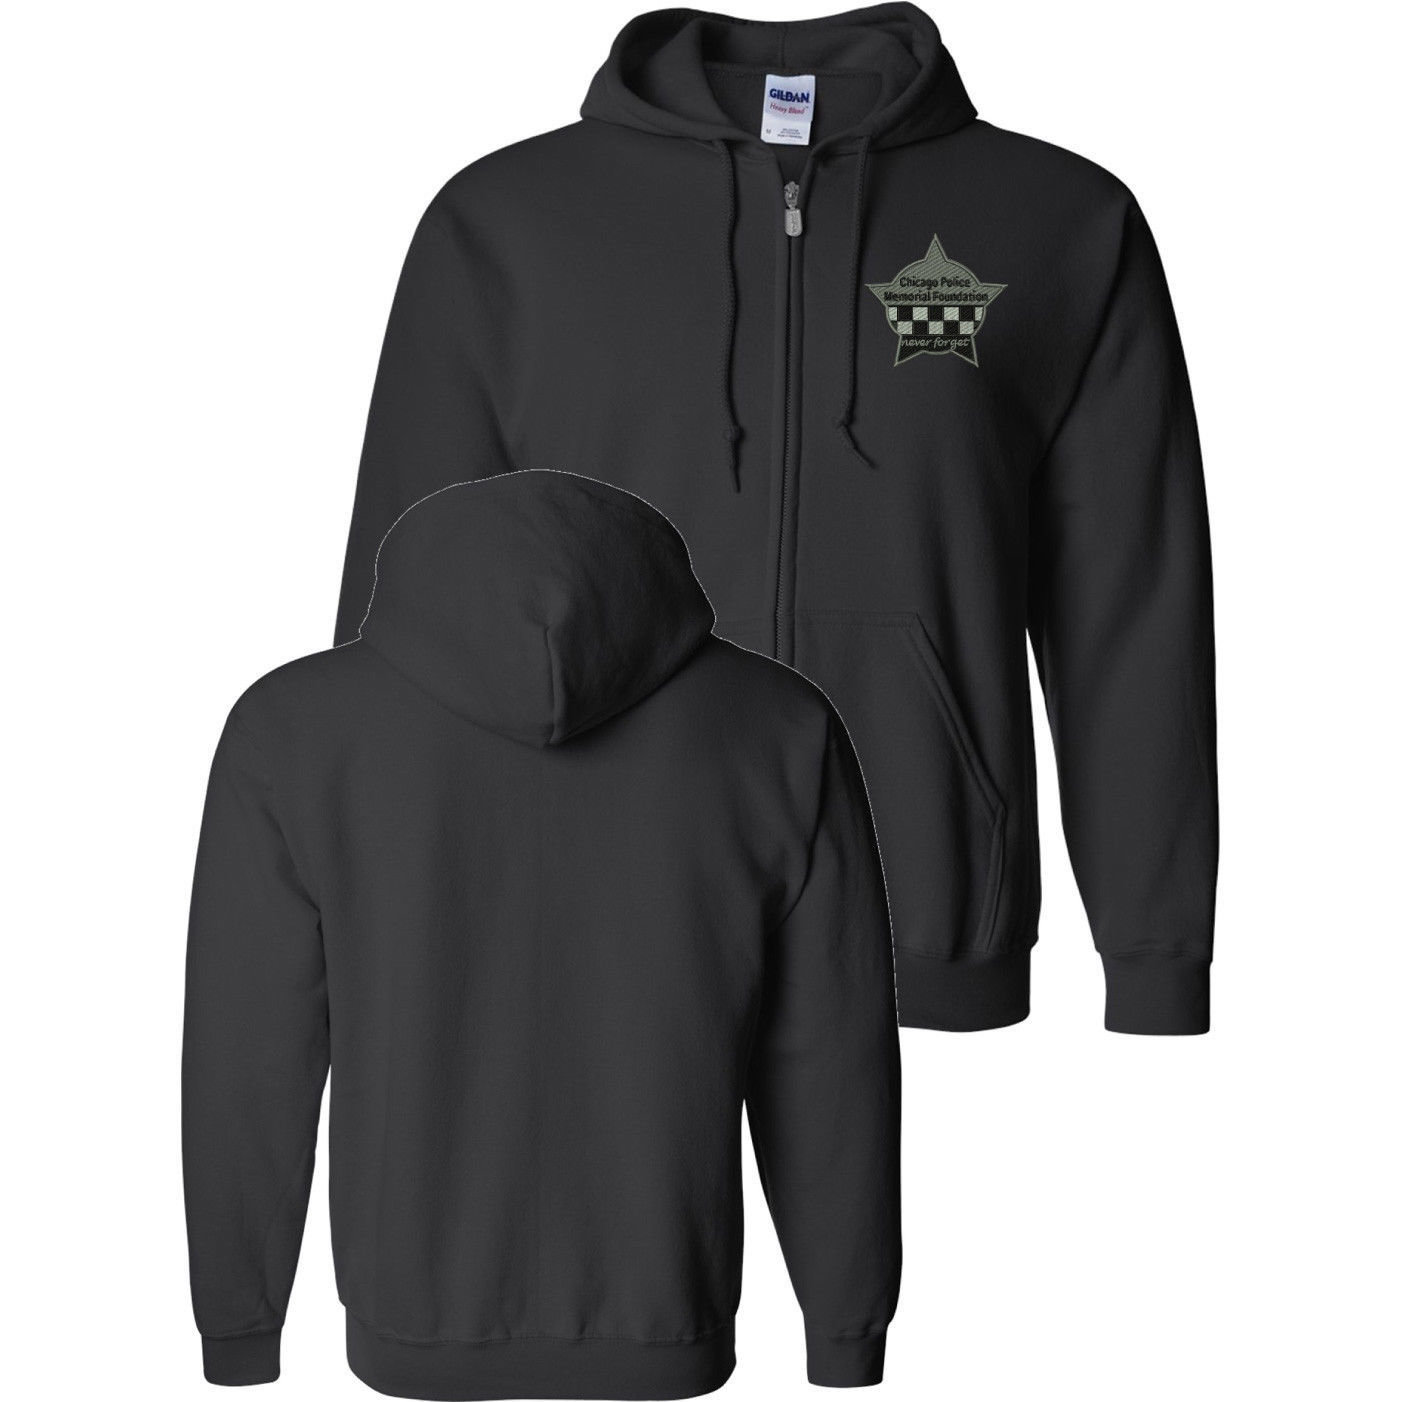 CPD Memorial Full Zip Sweat Shirt with Embroidered Star Black 16000